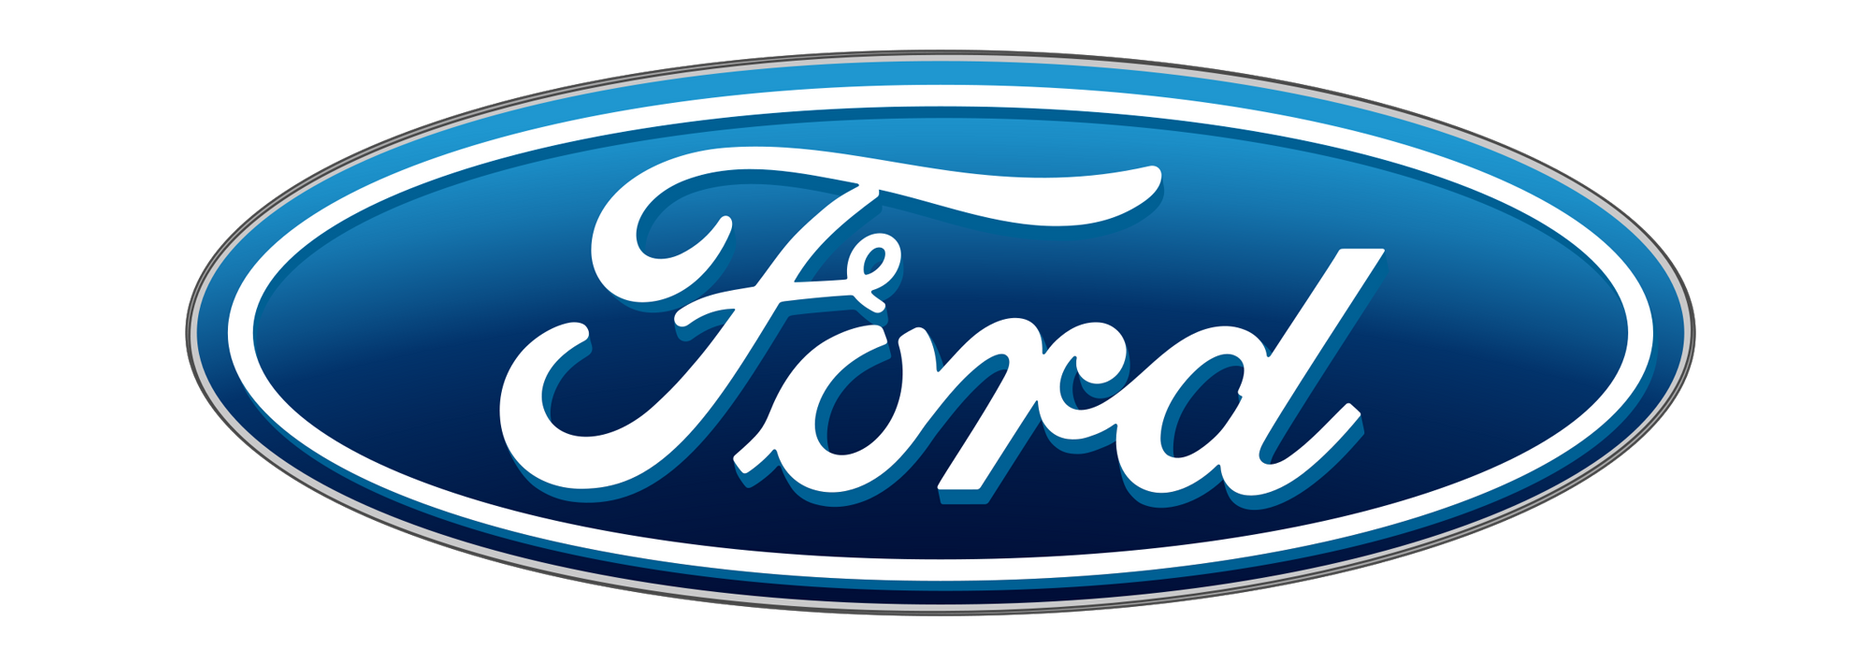 logo-Ford.png